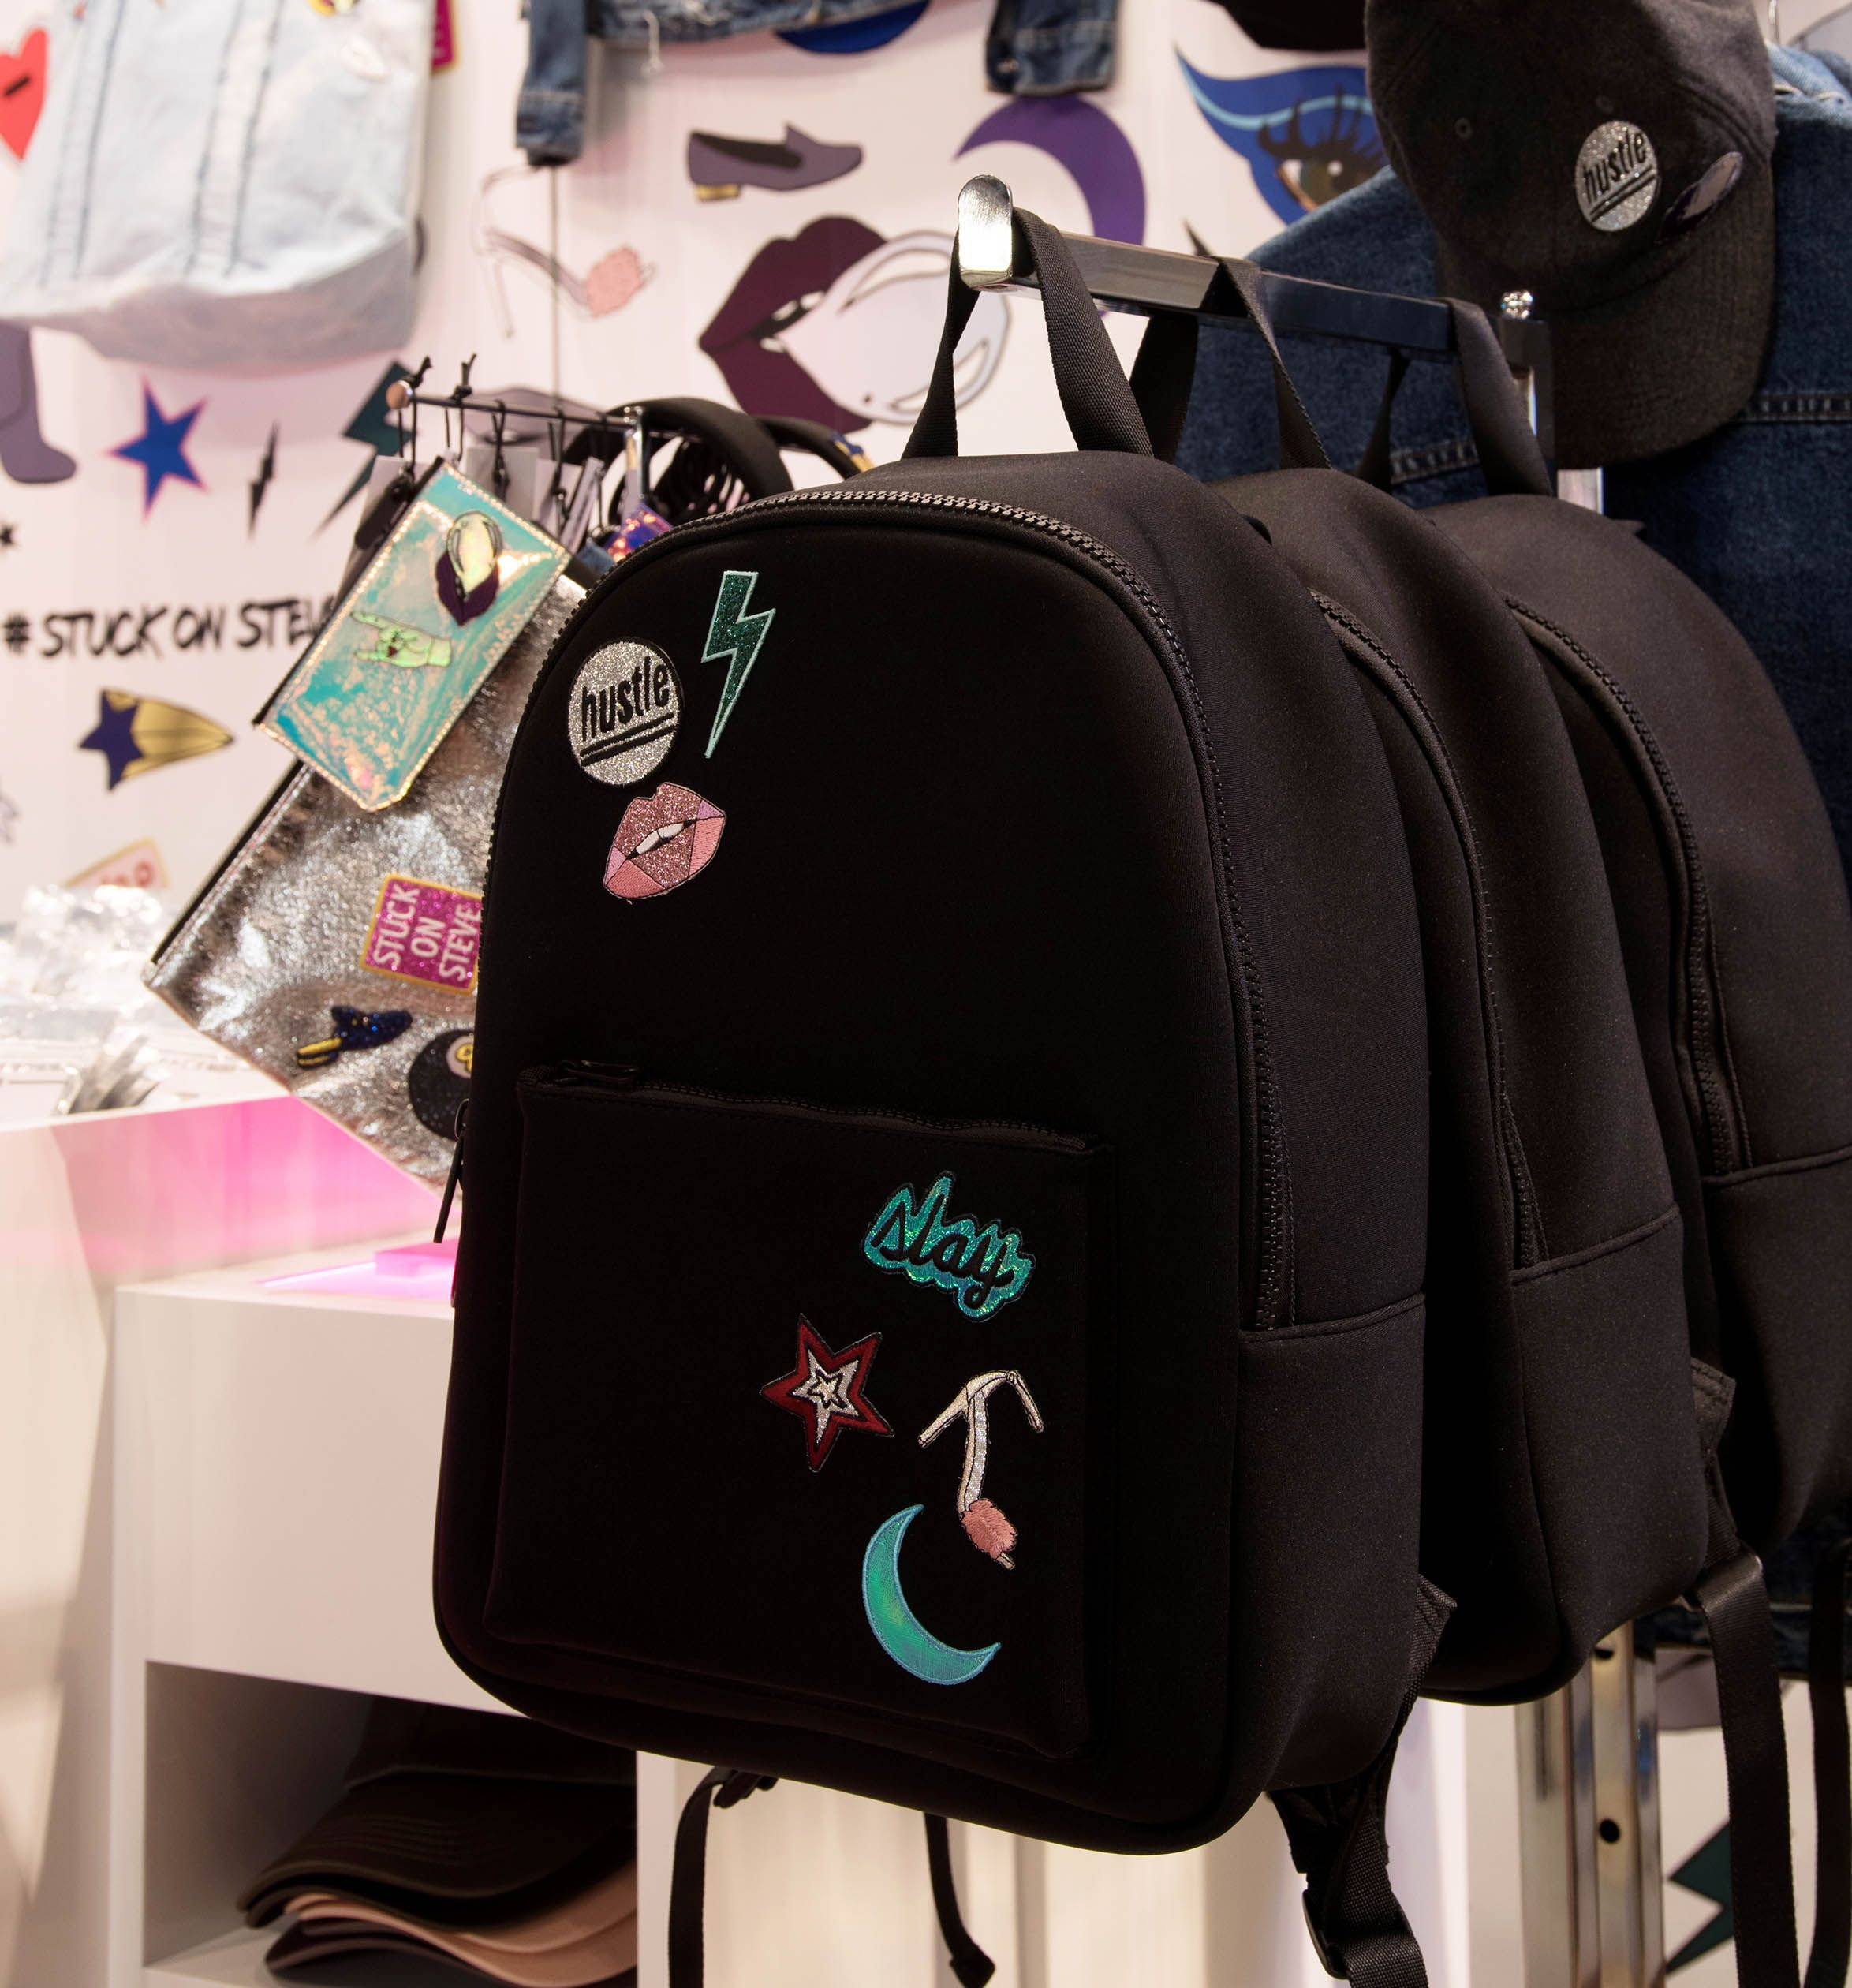 Backpacks and flat zip pouch